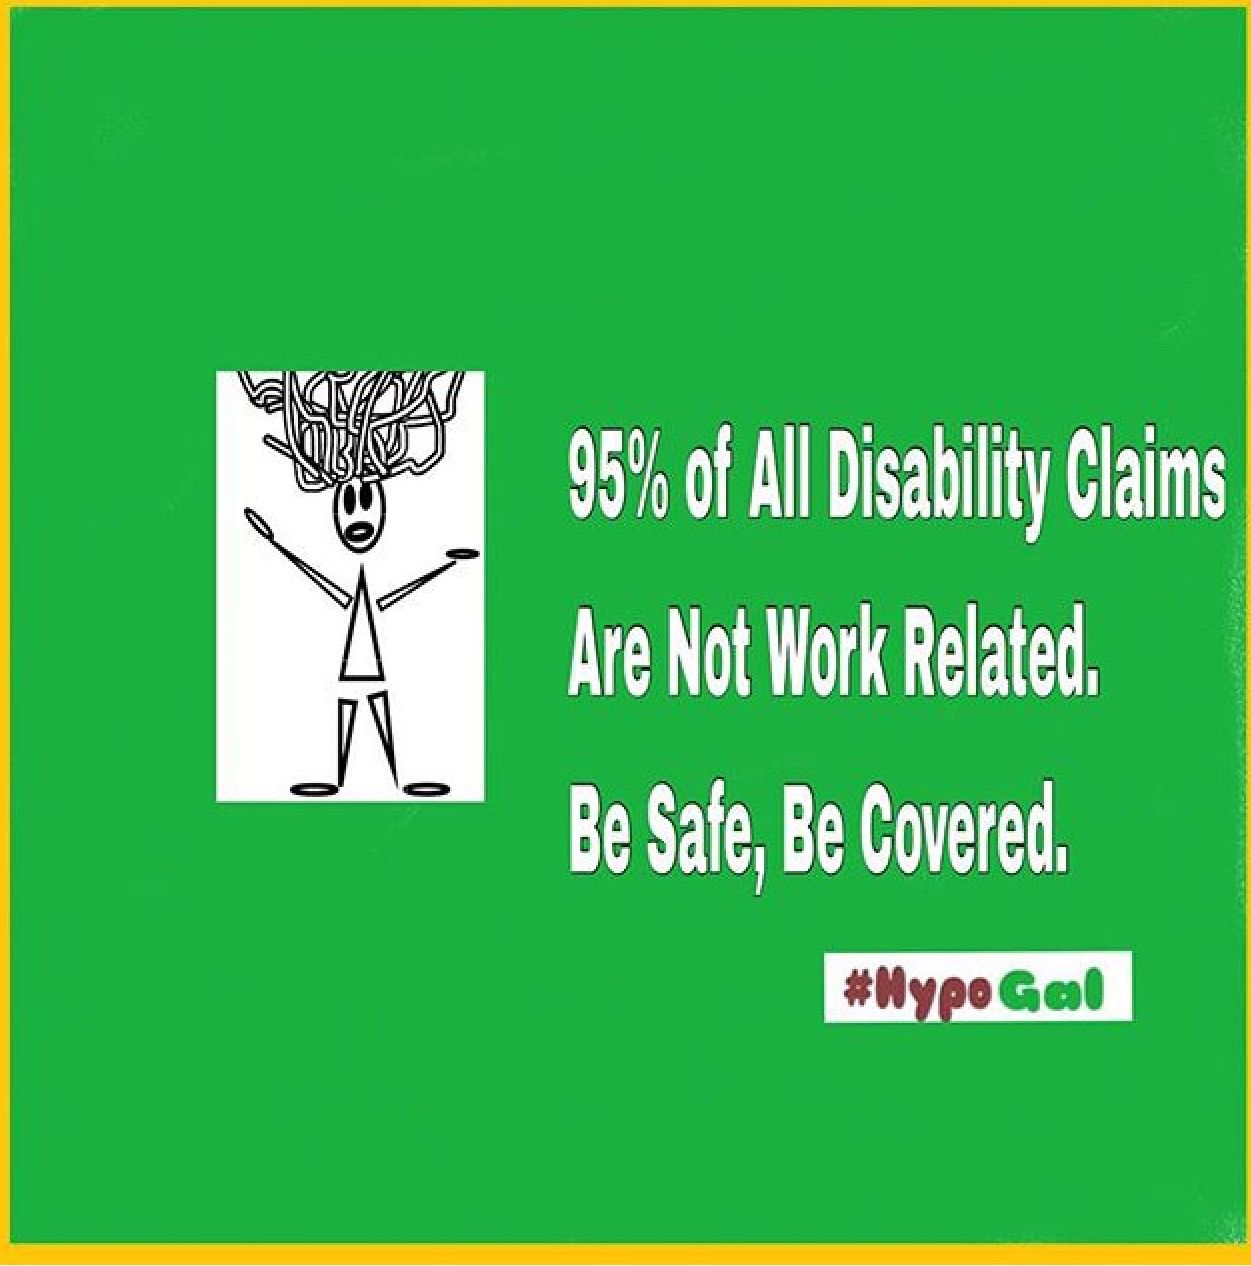 Disabilityfacts hypogal work injury disability